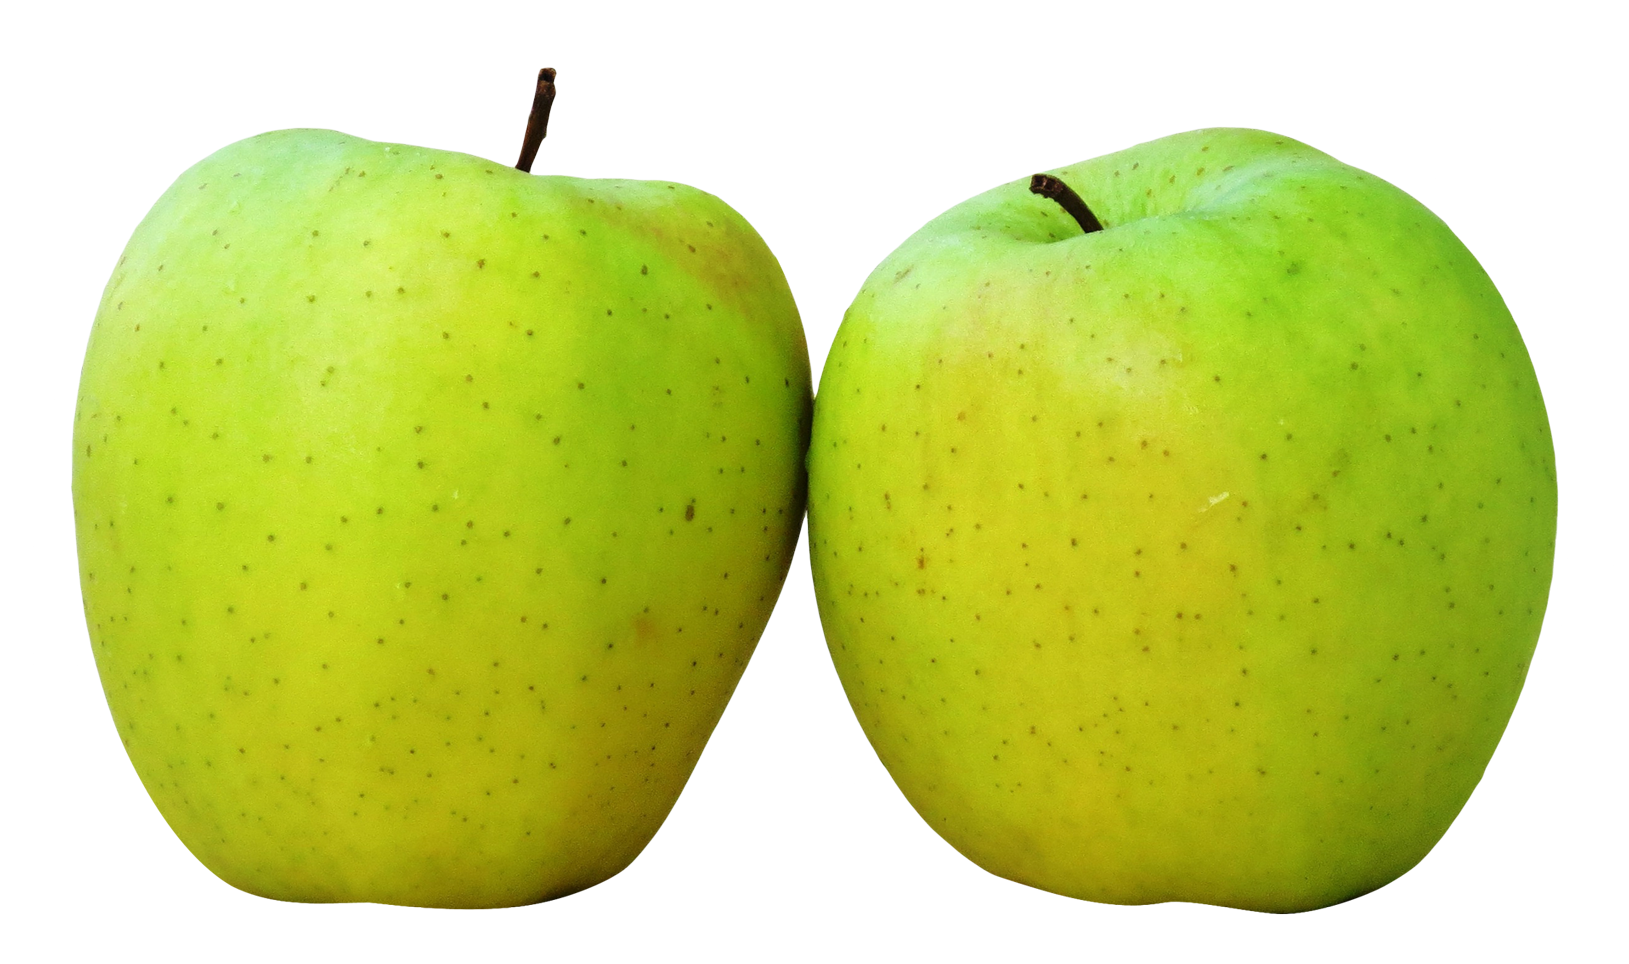 Apples png. Two green image pngpix